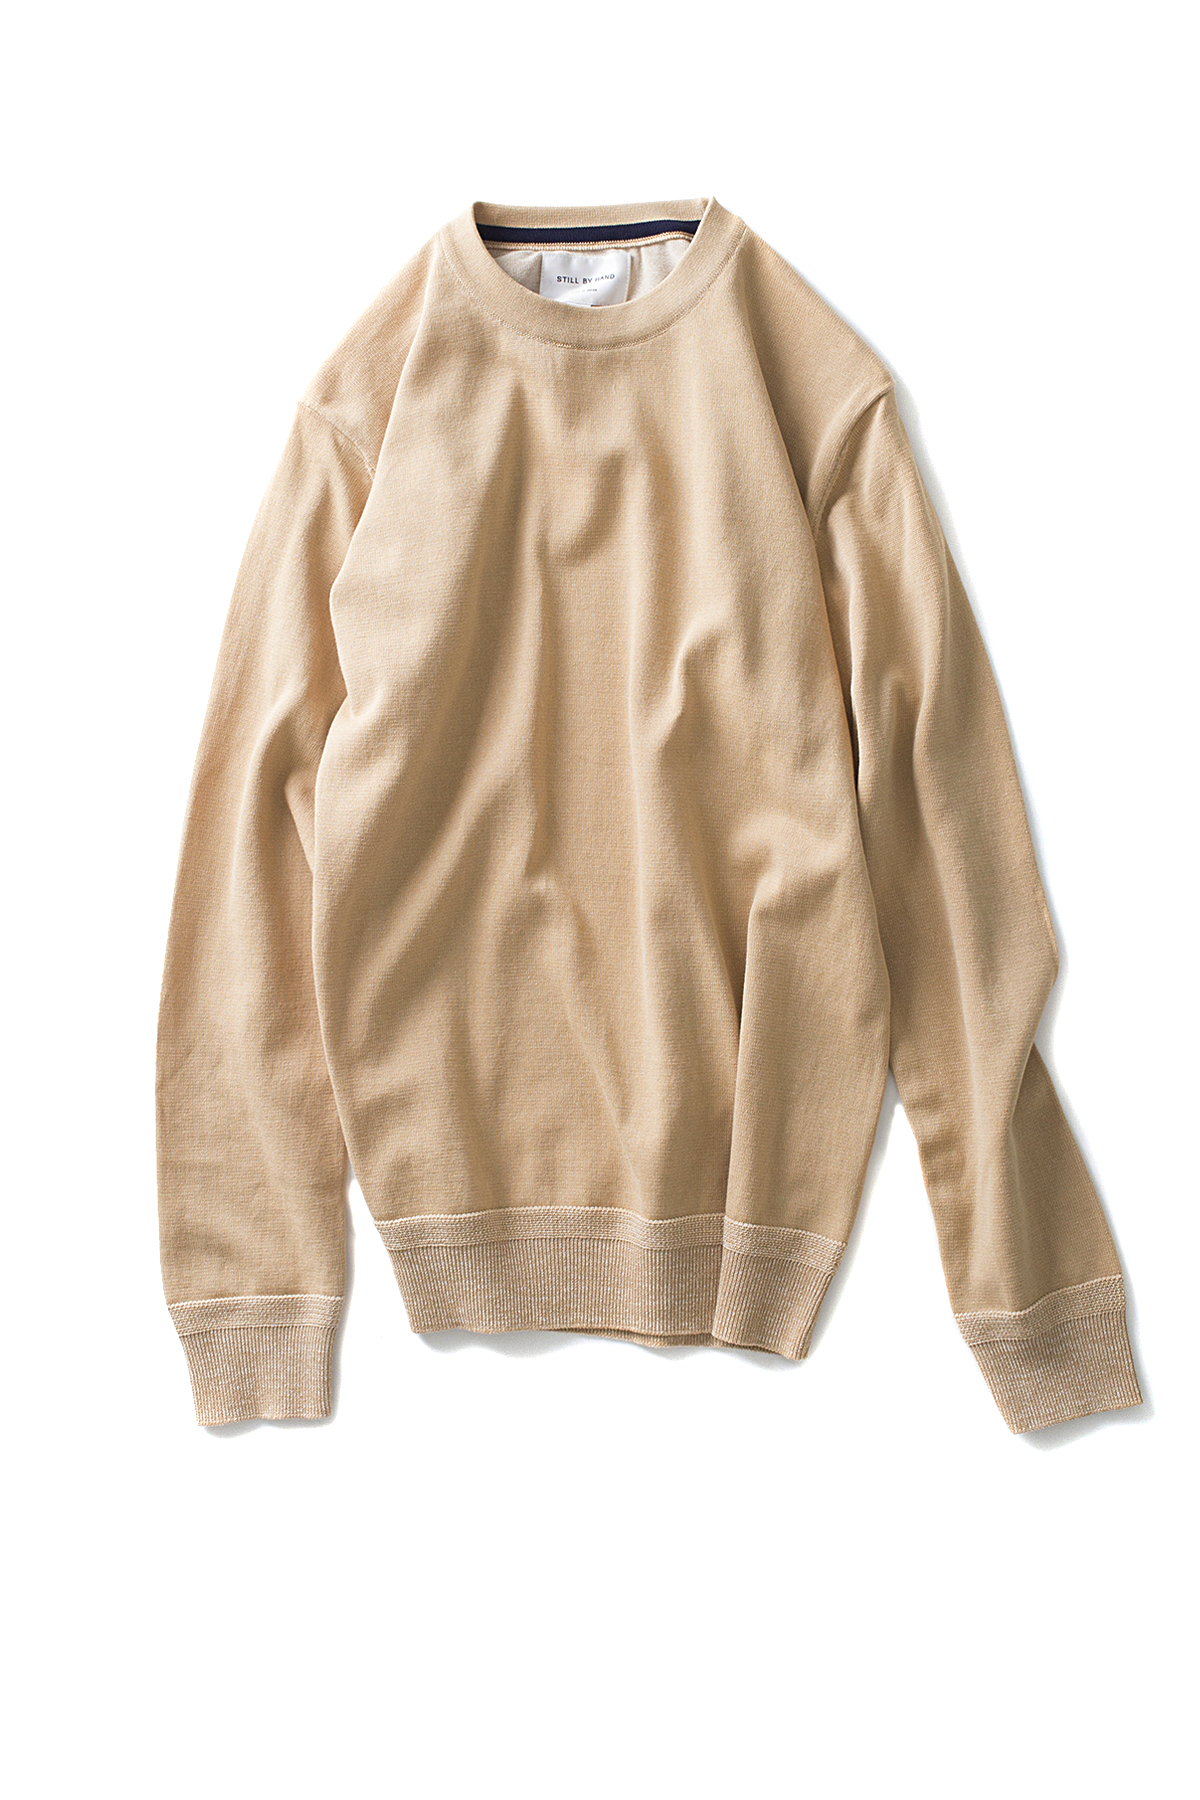 Still By Hand : Plating Stitch Knit (Beige)